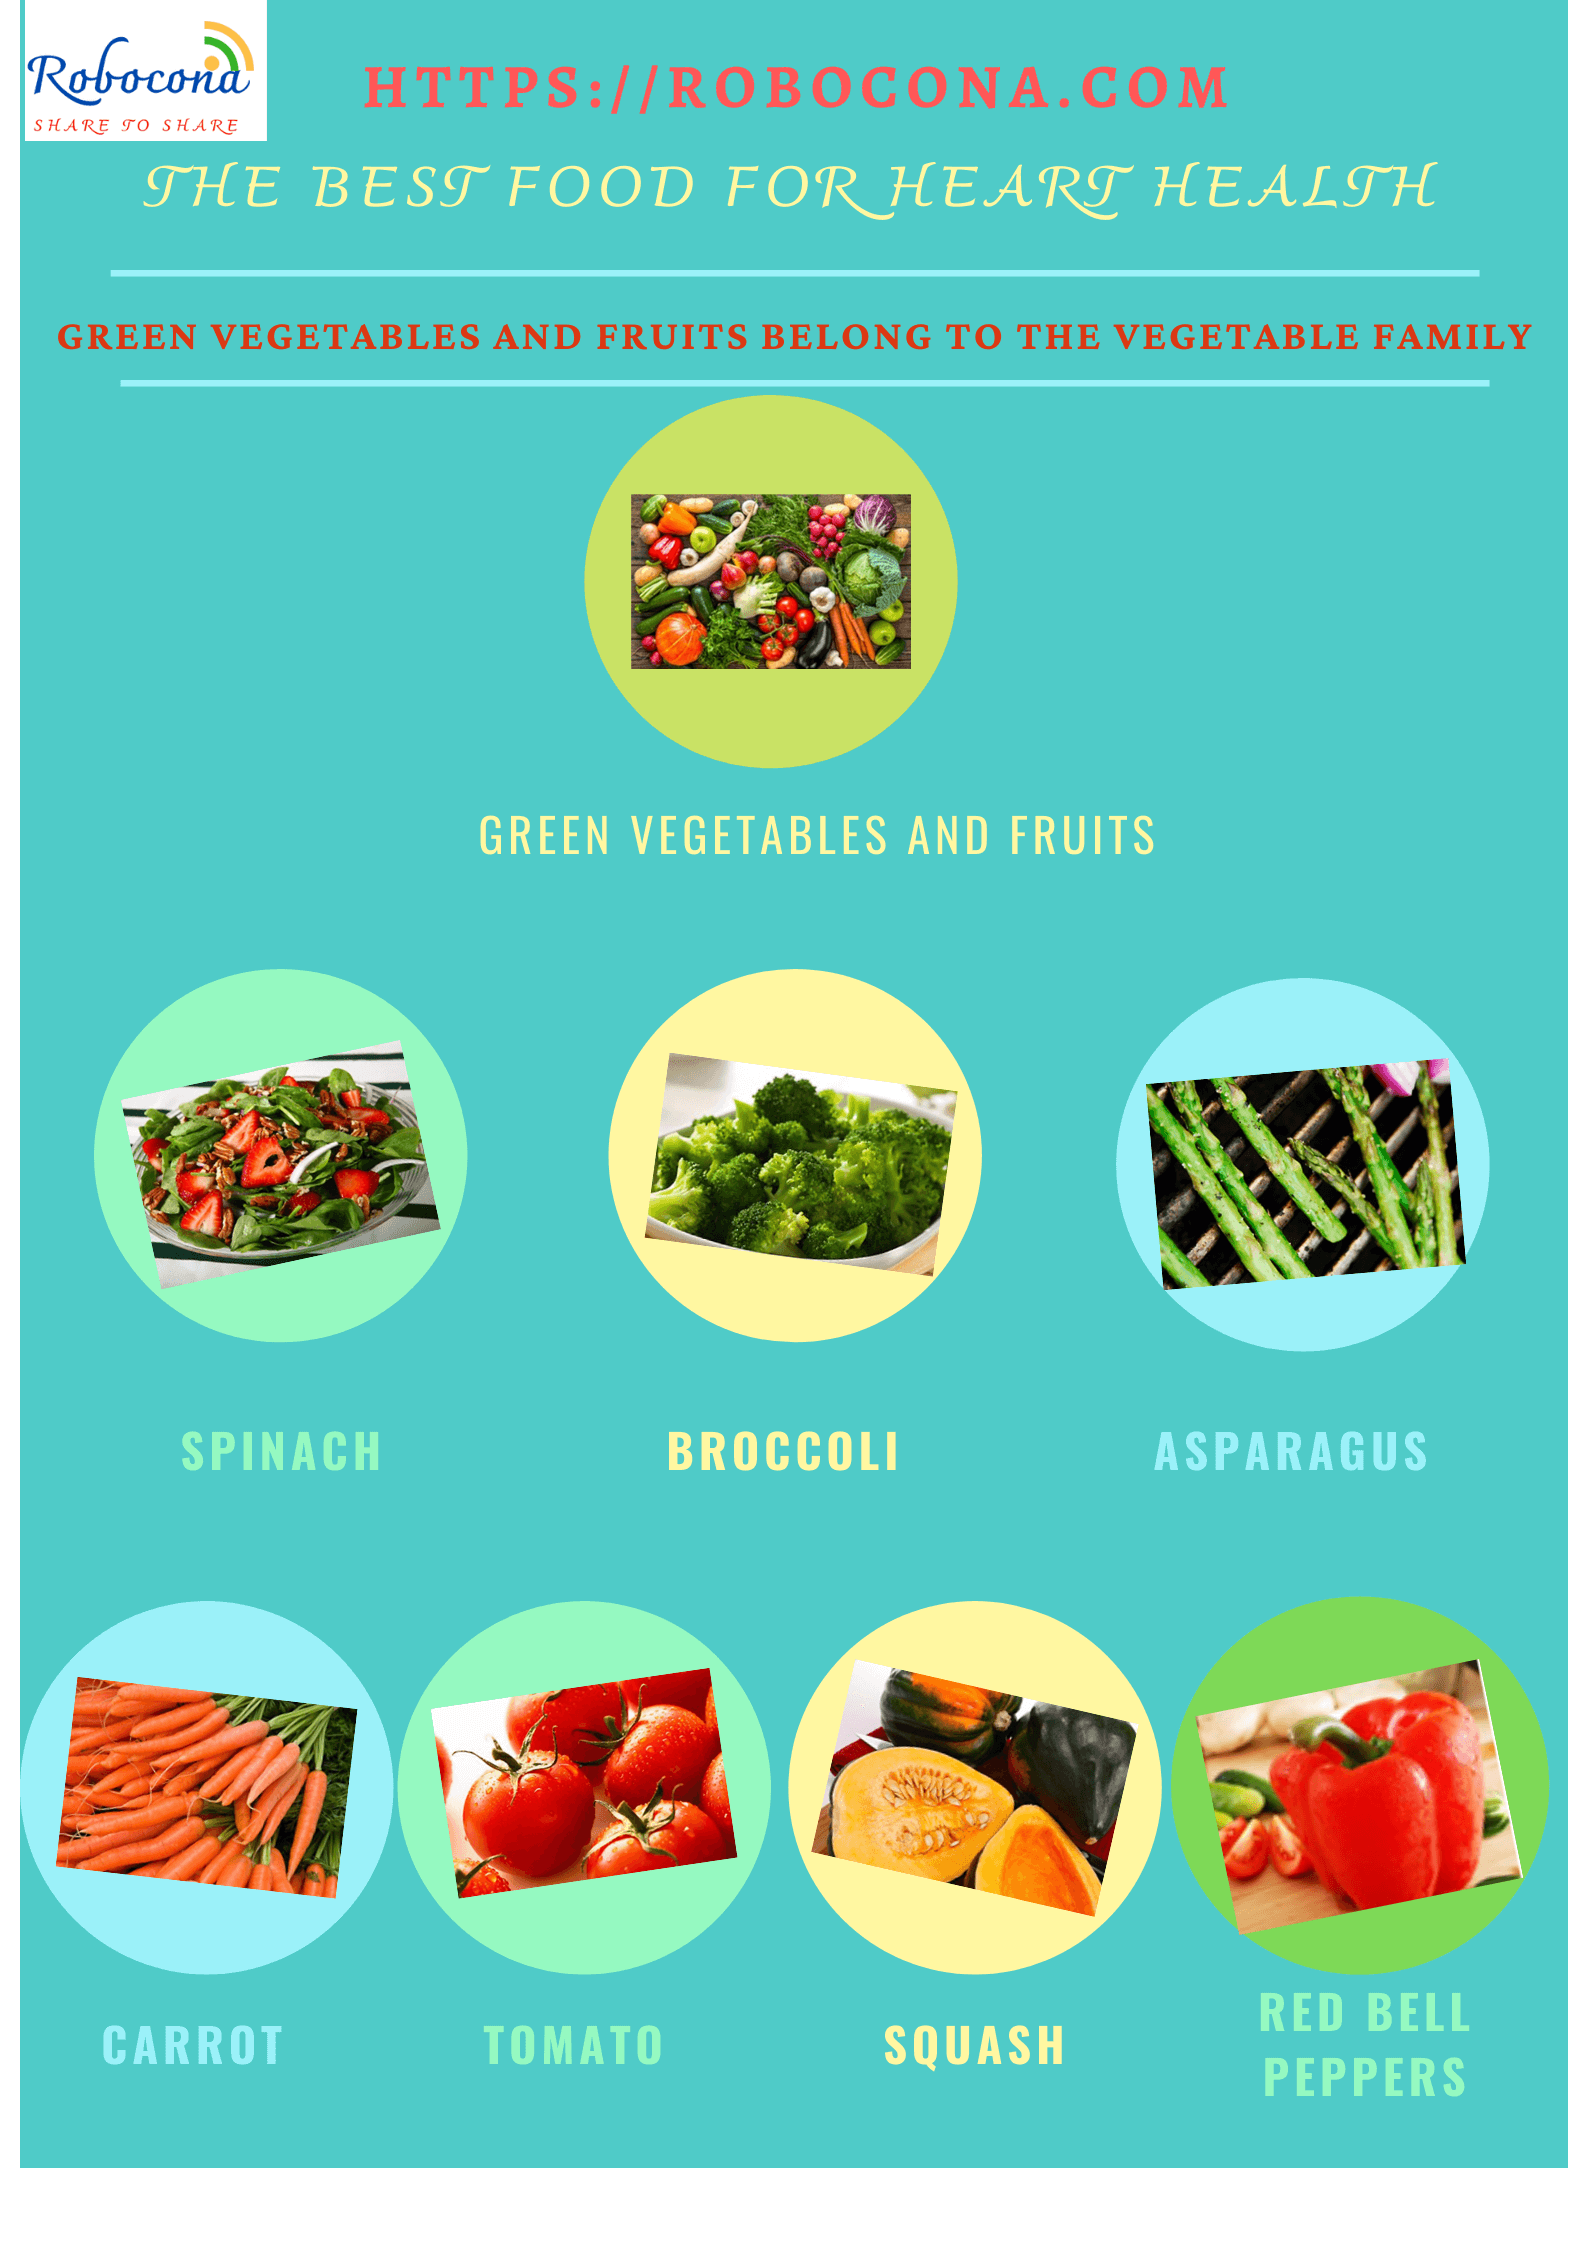 Green vegetables and fruits belong to the vegetable family